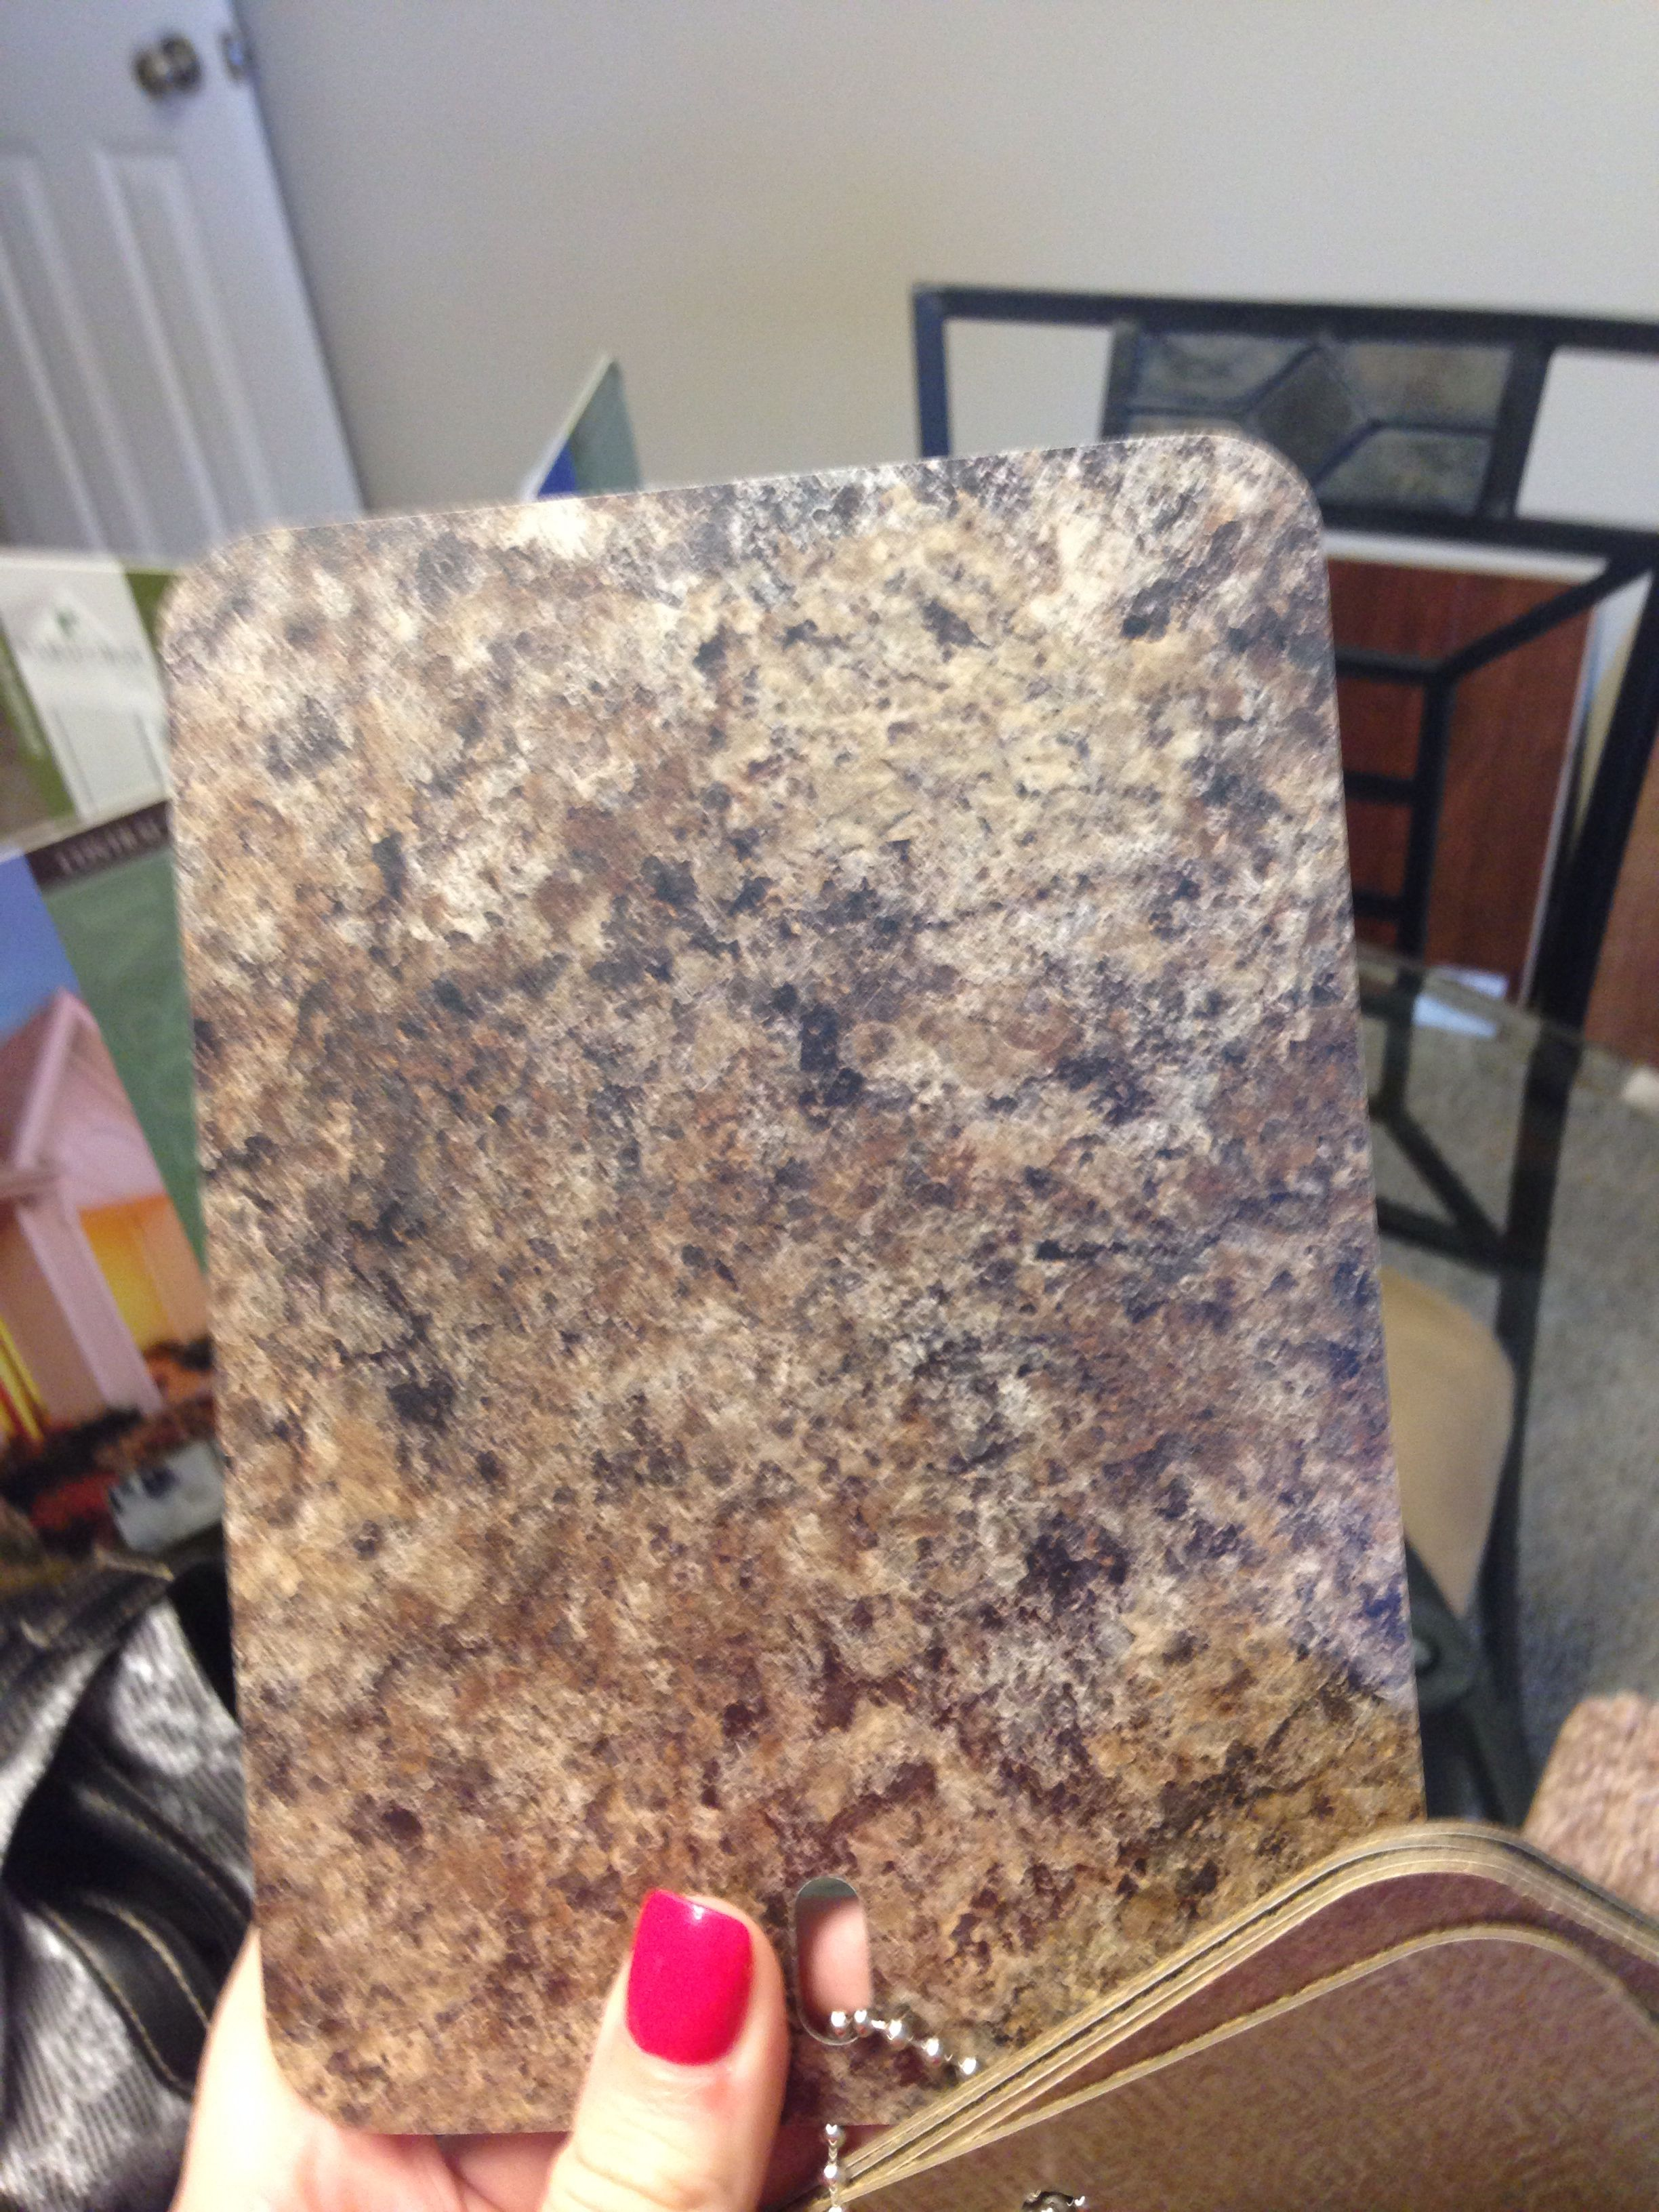 Jamocha Granite Formica 7734 58 How To Dry Basil Sweet Home Formica